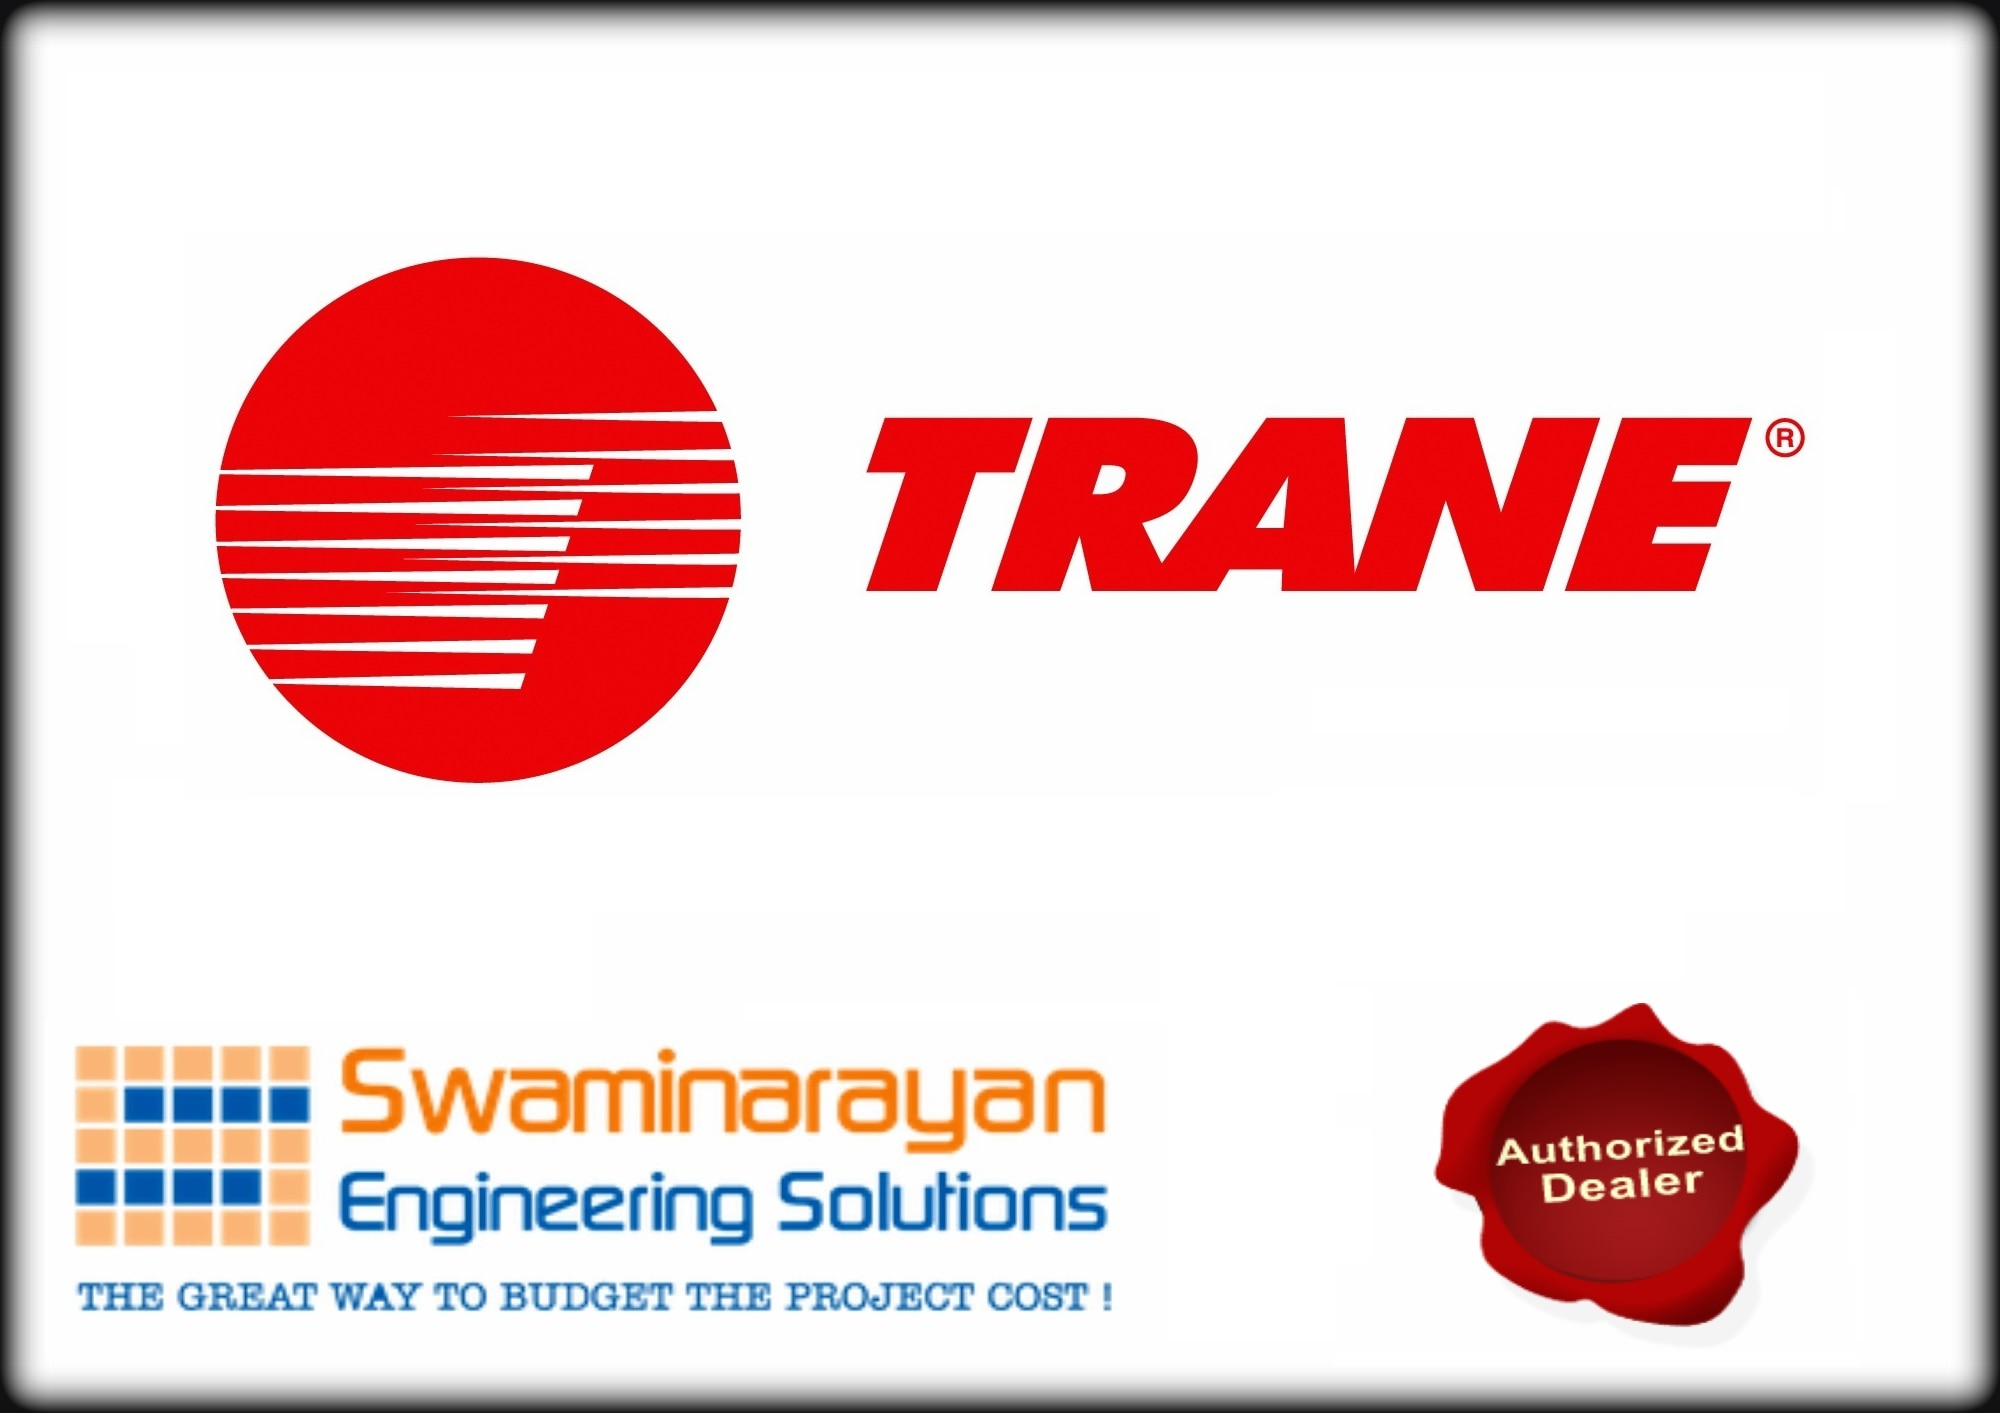 Swaminarayan Engineering Solution : TRANE  A.C  DEALER